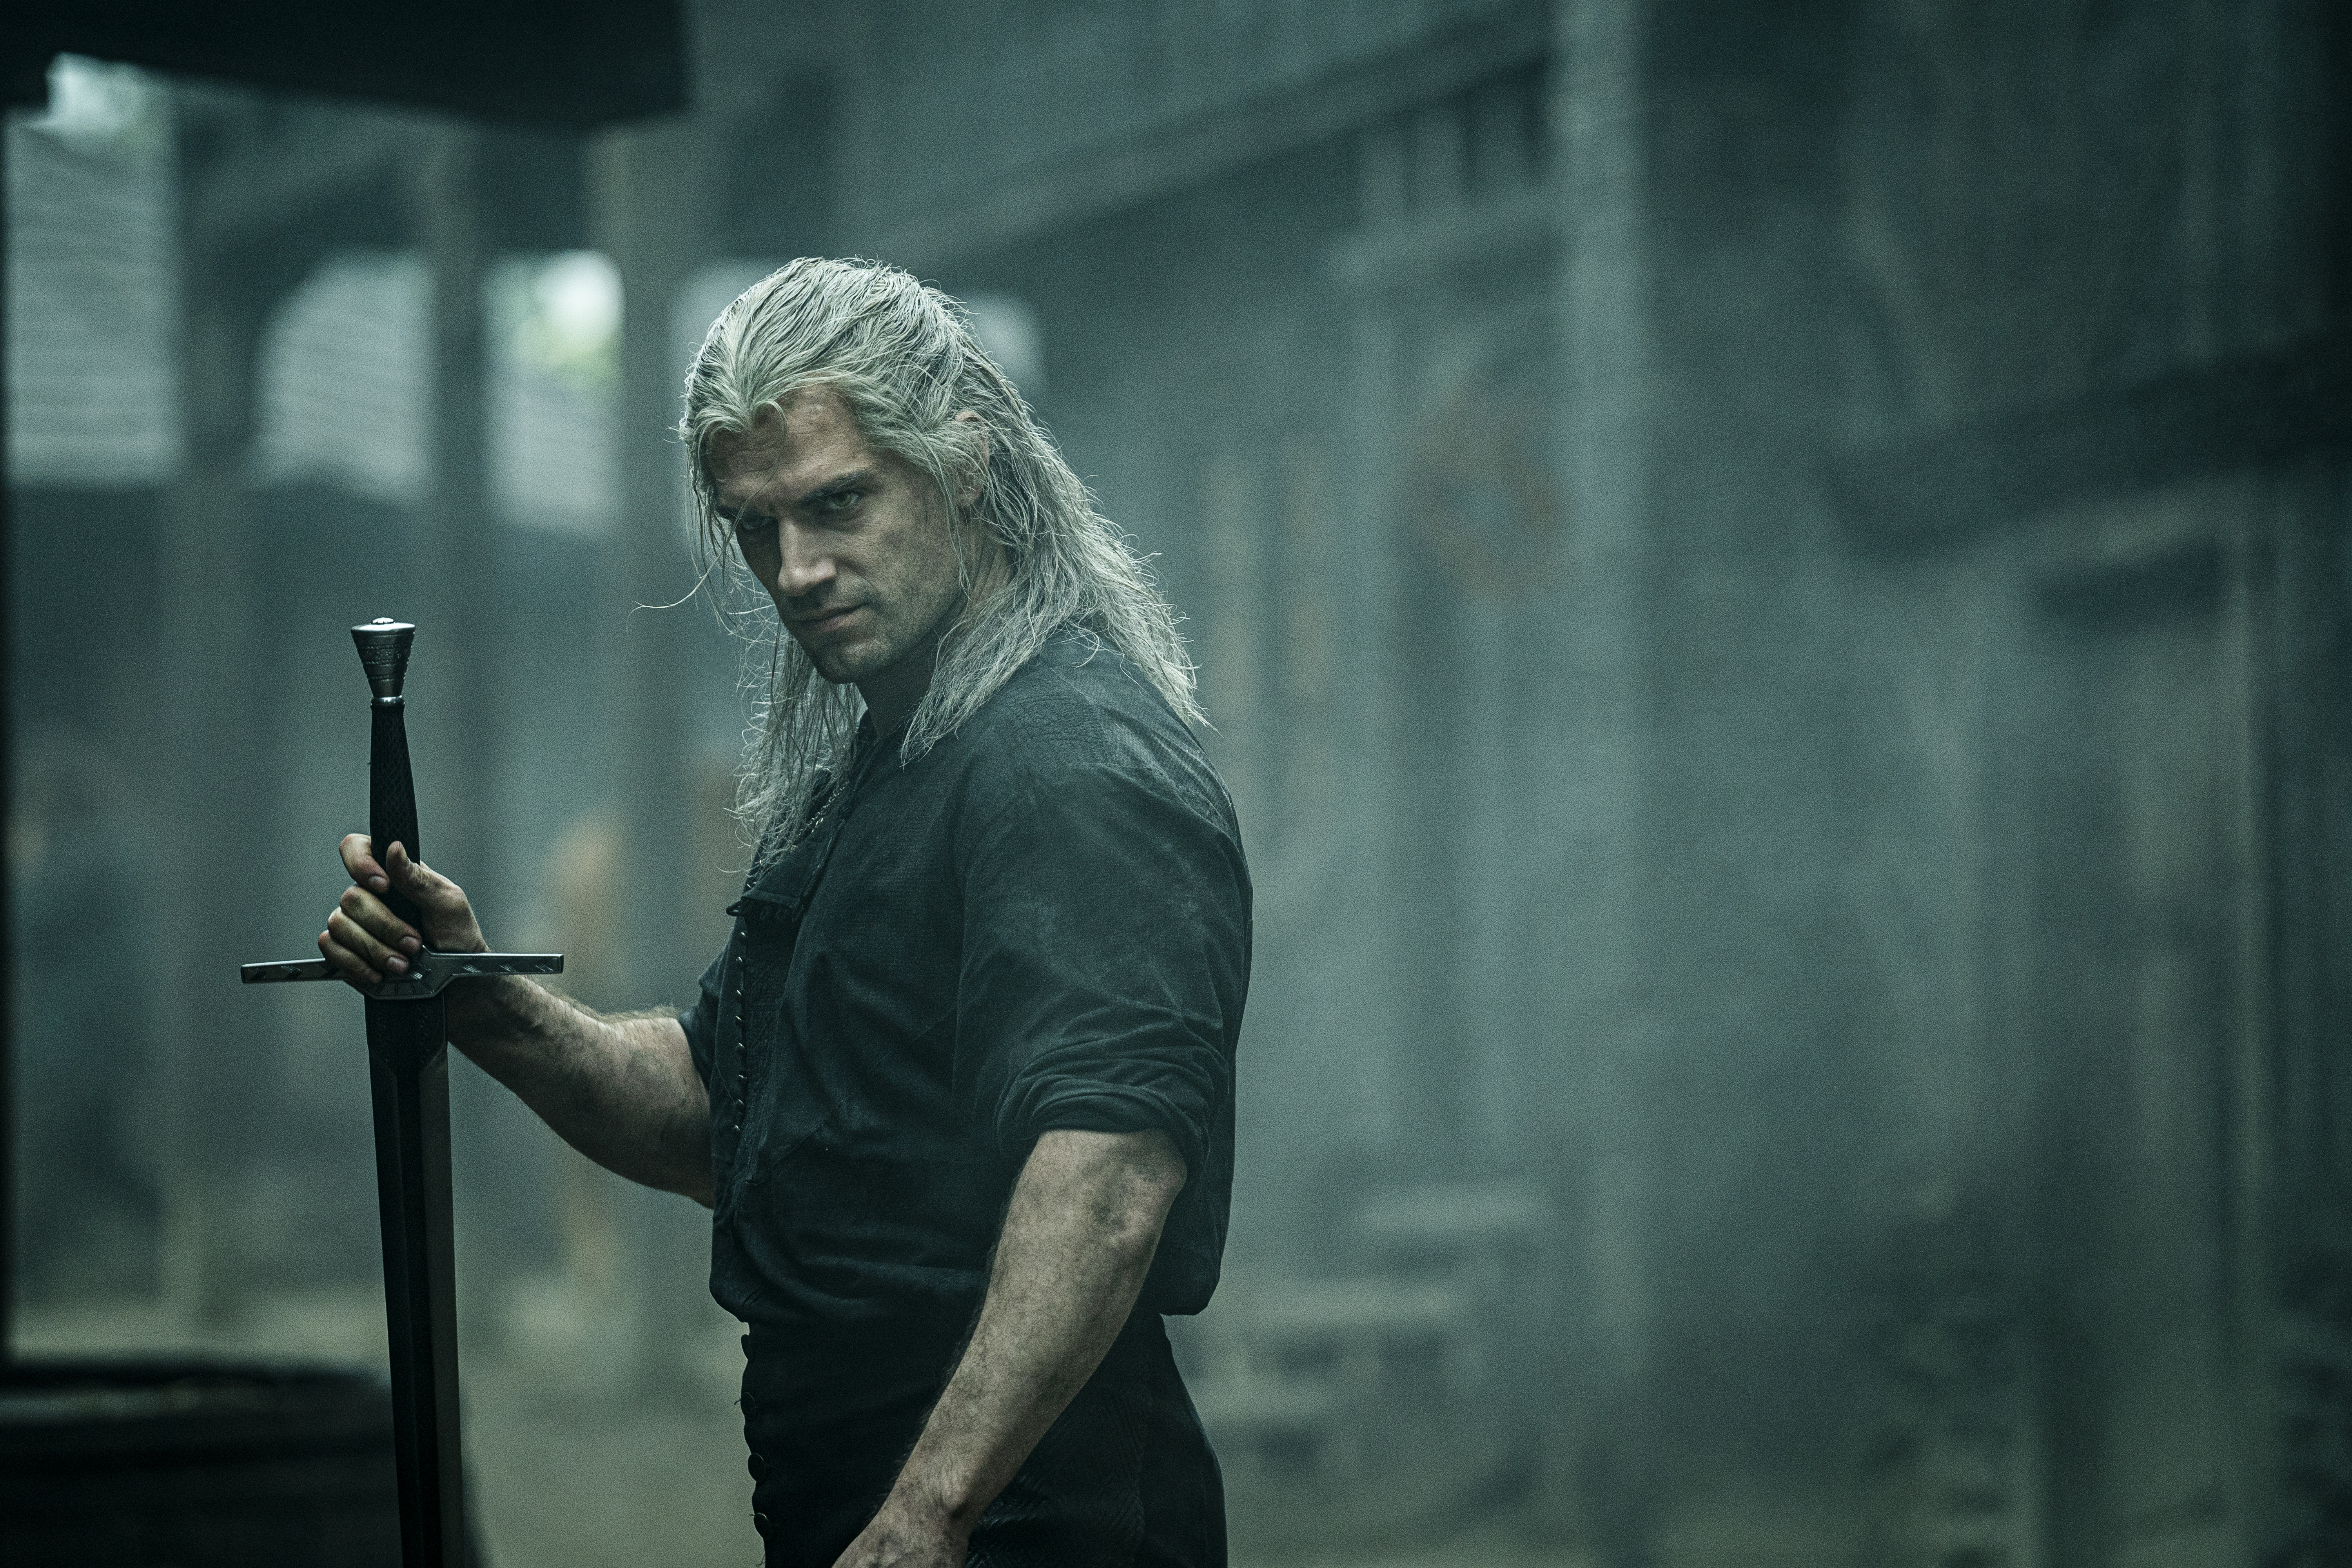 Geralt of Rivia, a brawny gray-haired man, holds a sword upside down by the hilt in The Witcher